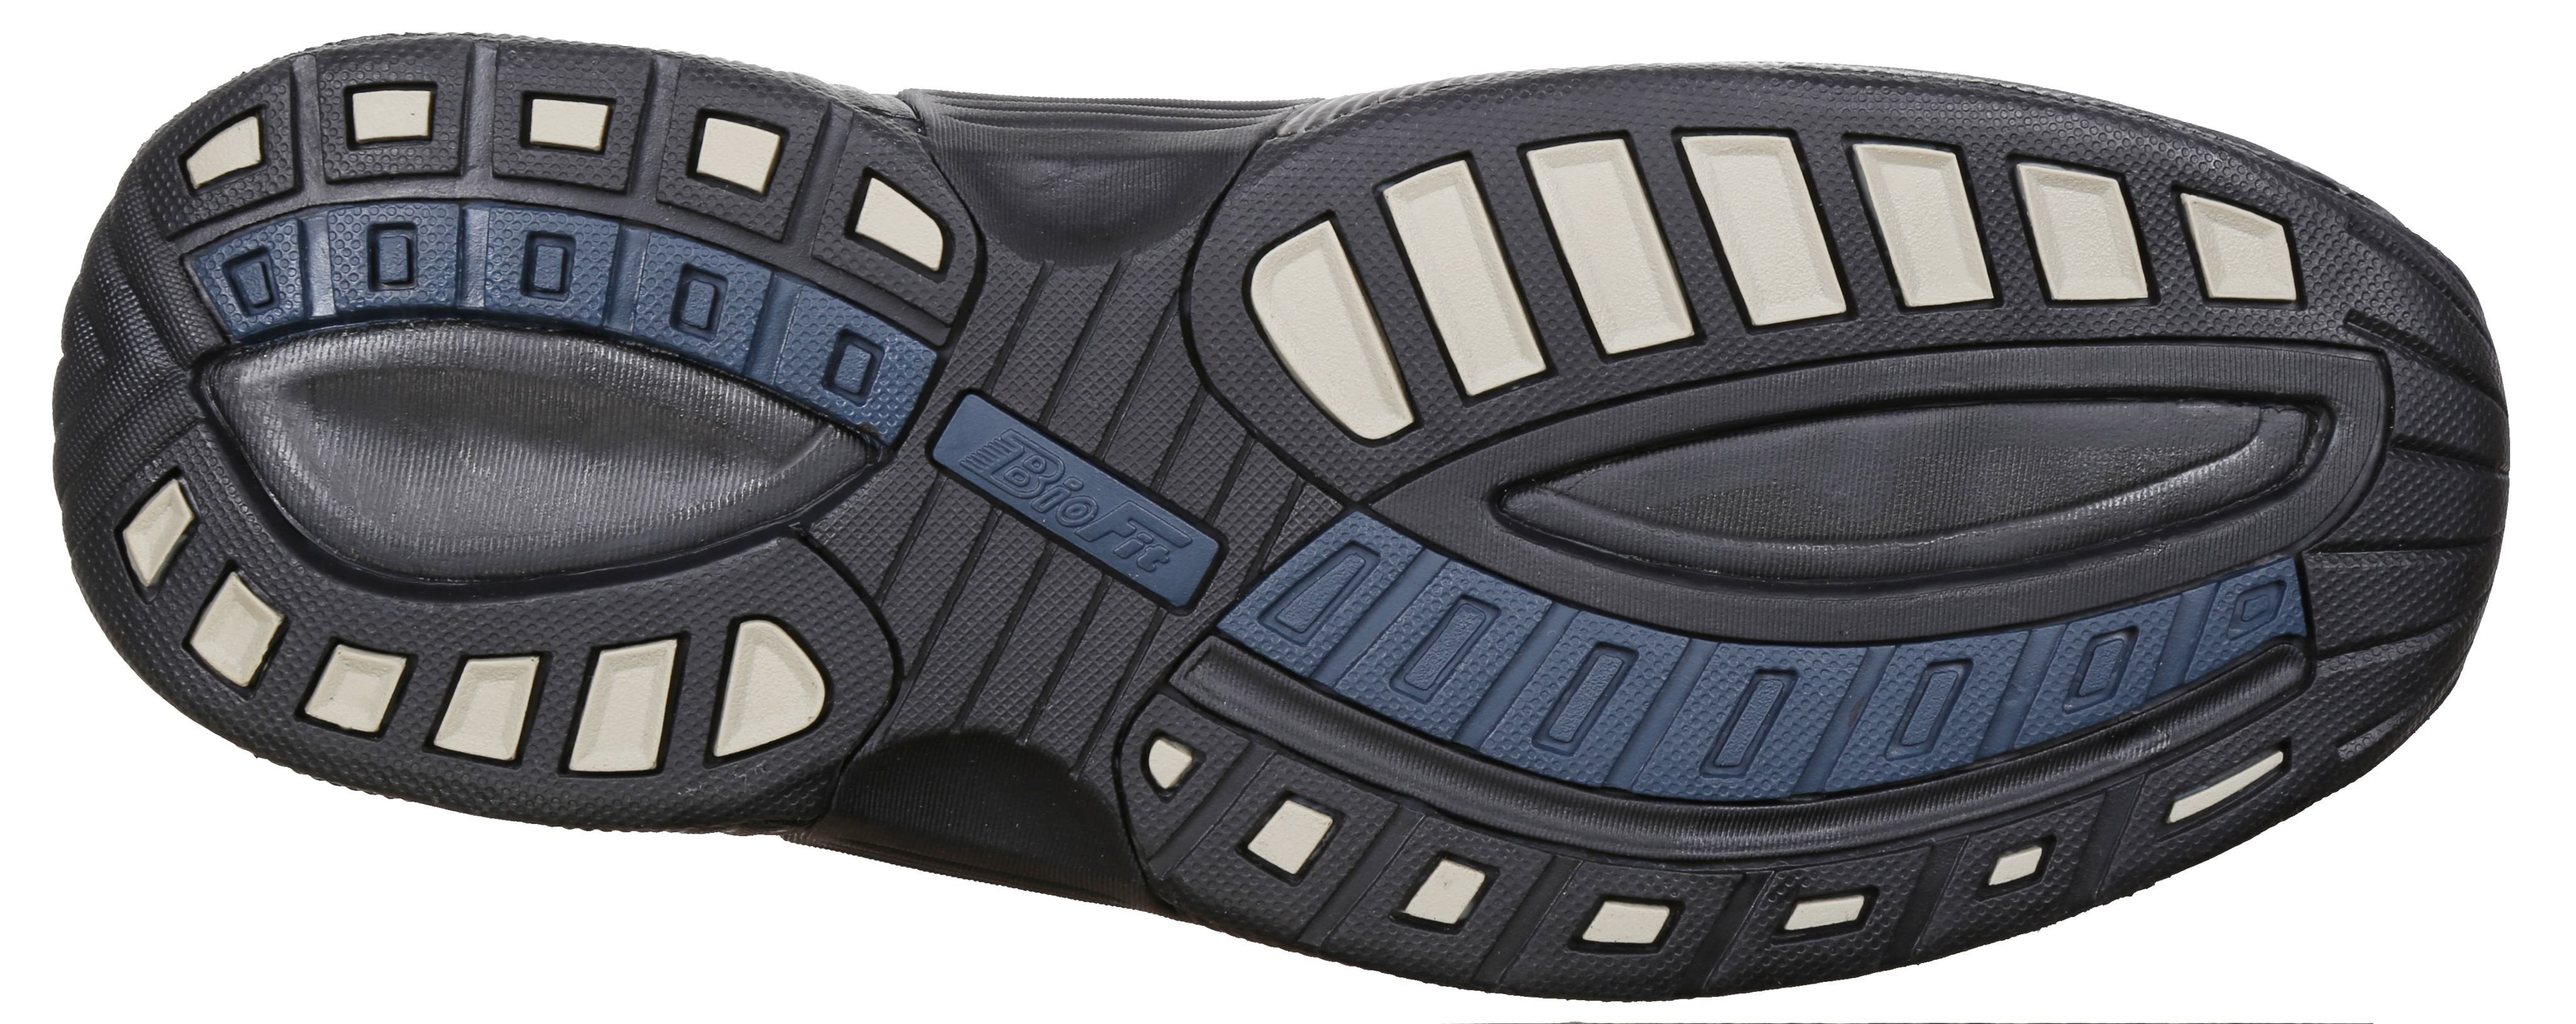 Footwear - Alpine Orthotic Sandal